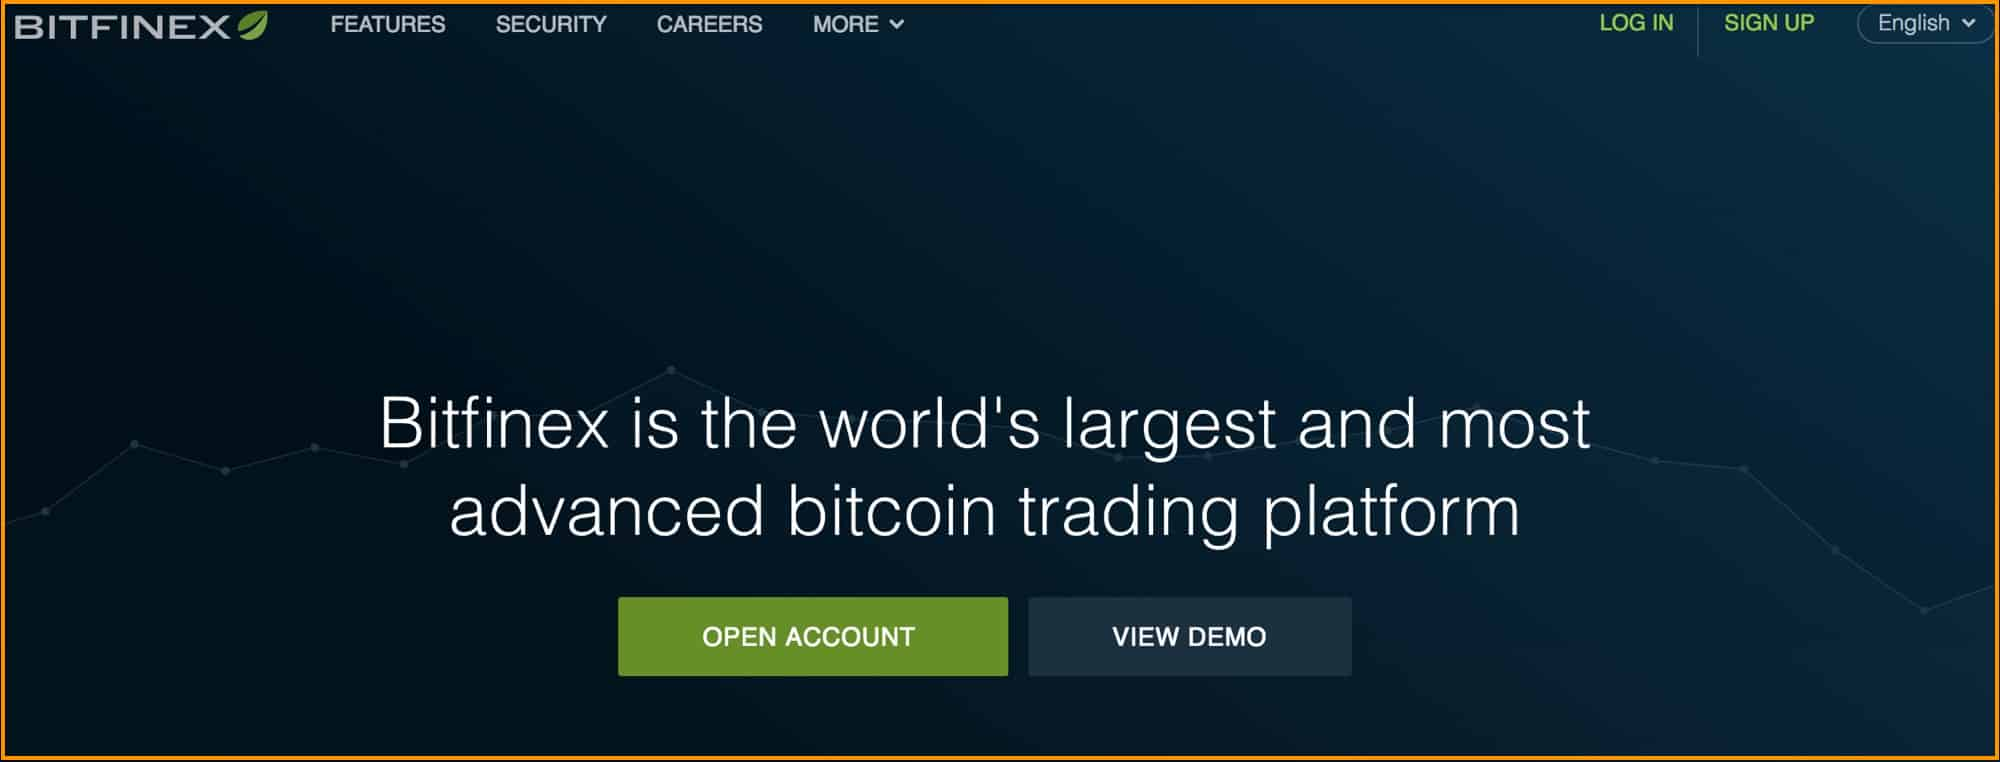 Bitfinex-Cryptocurrency-exchange